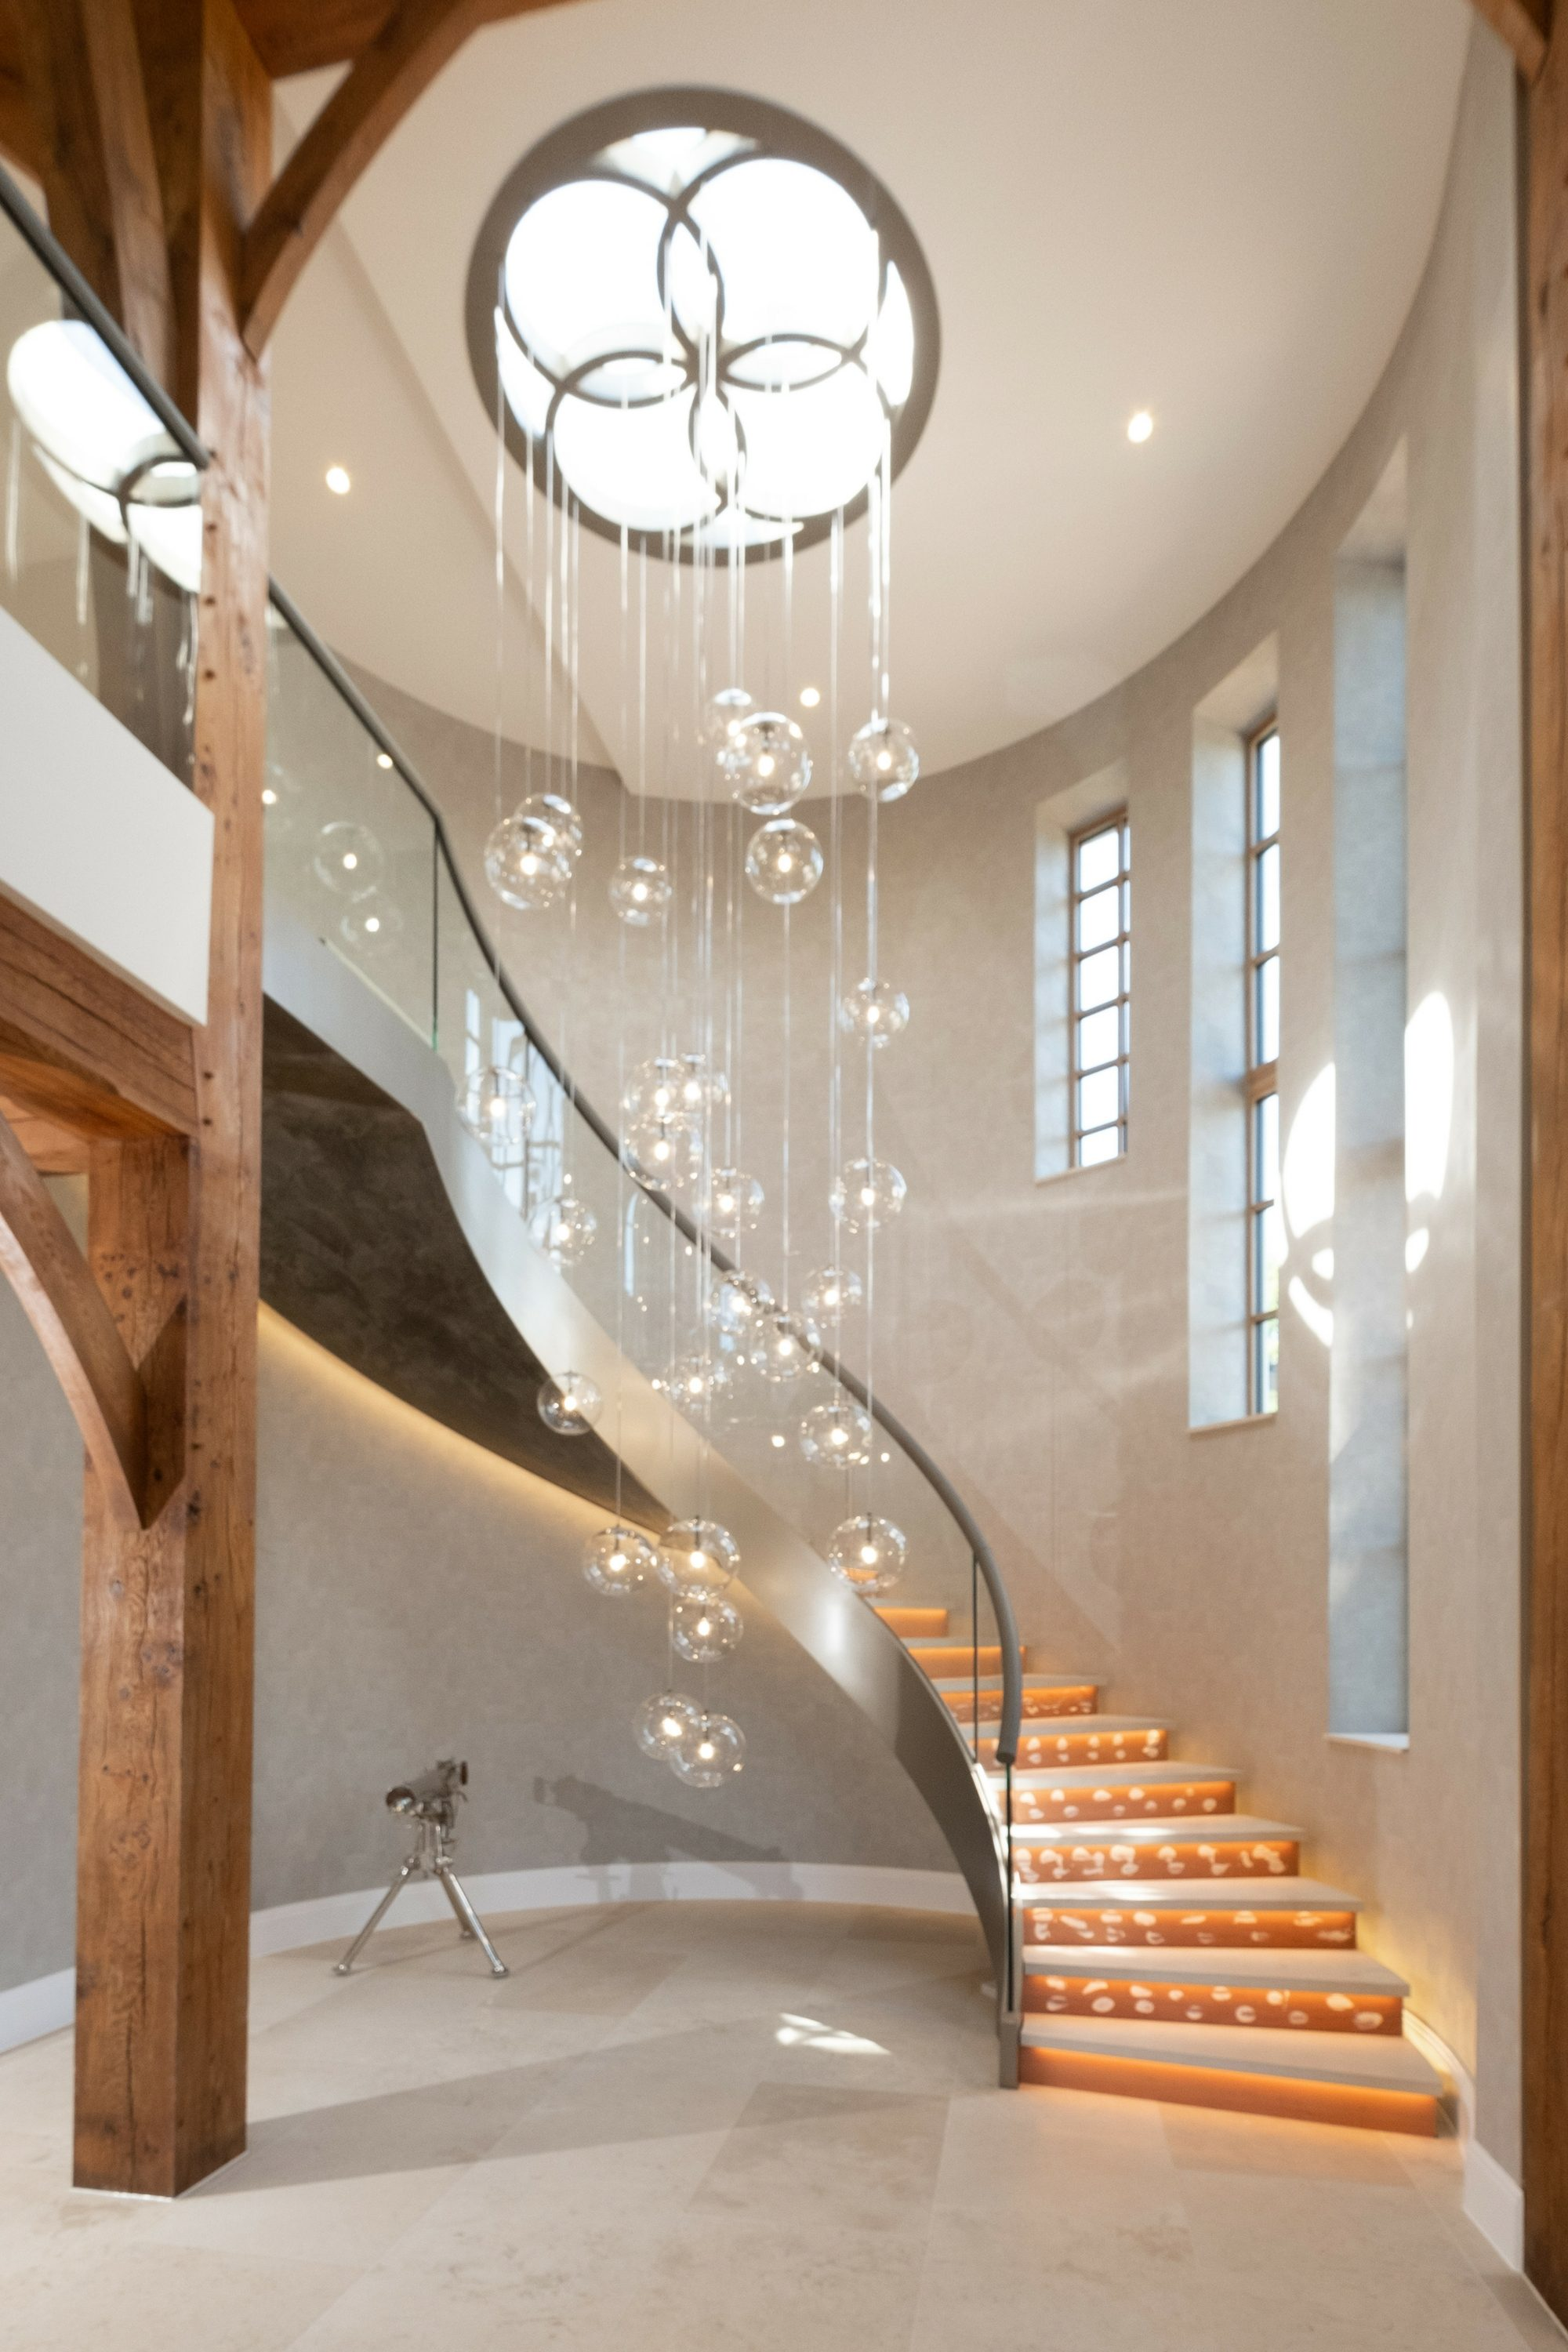 light falling on curved staircase